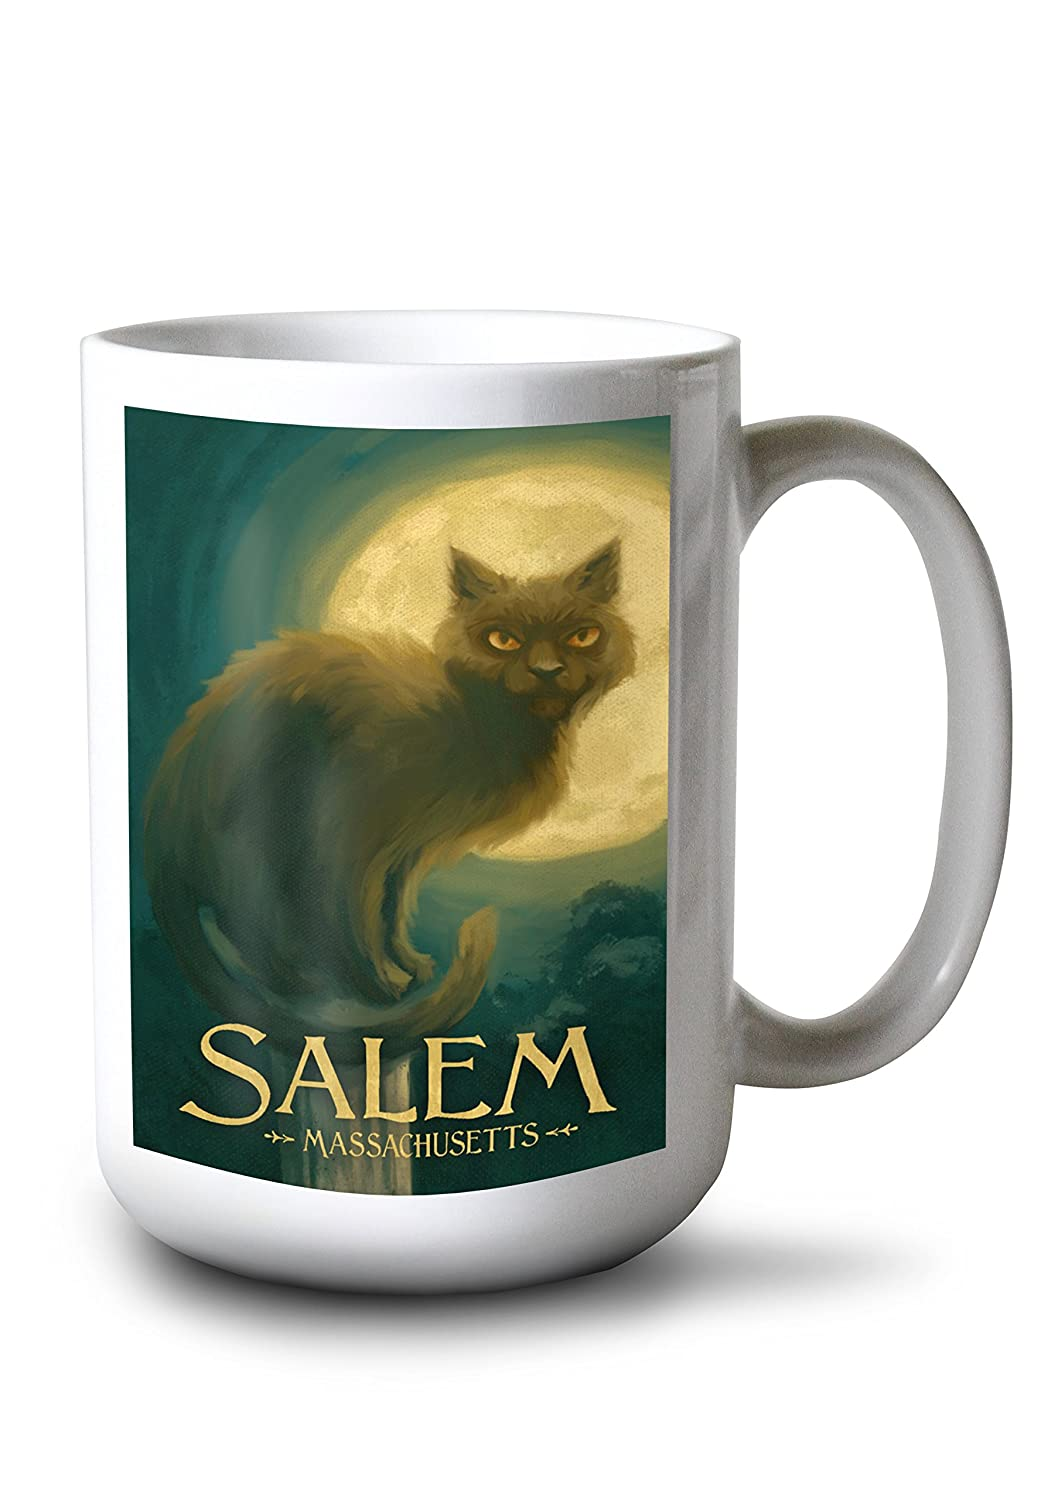 激安特価 (16 Decor x 24 Giclee 15oz Print) - Salem, Poster) Massachusetts - Black Cat - Halloween Oil Painting (16x24 Giclee Gallery Print, Wall Decor Travel Poster) B077RYNPTP 15oz Mug 15oz Mug, ヤスダ倶楽部:2f11ae3f --- arianechie.dominiotemporario.com